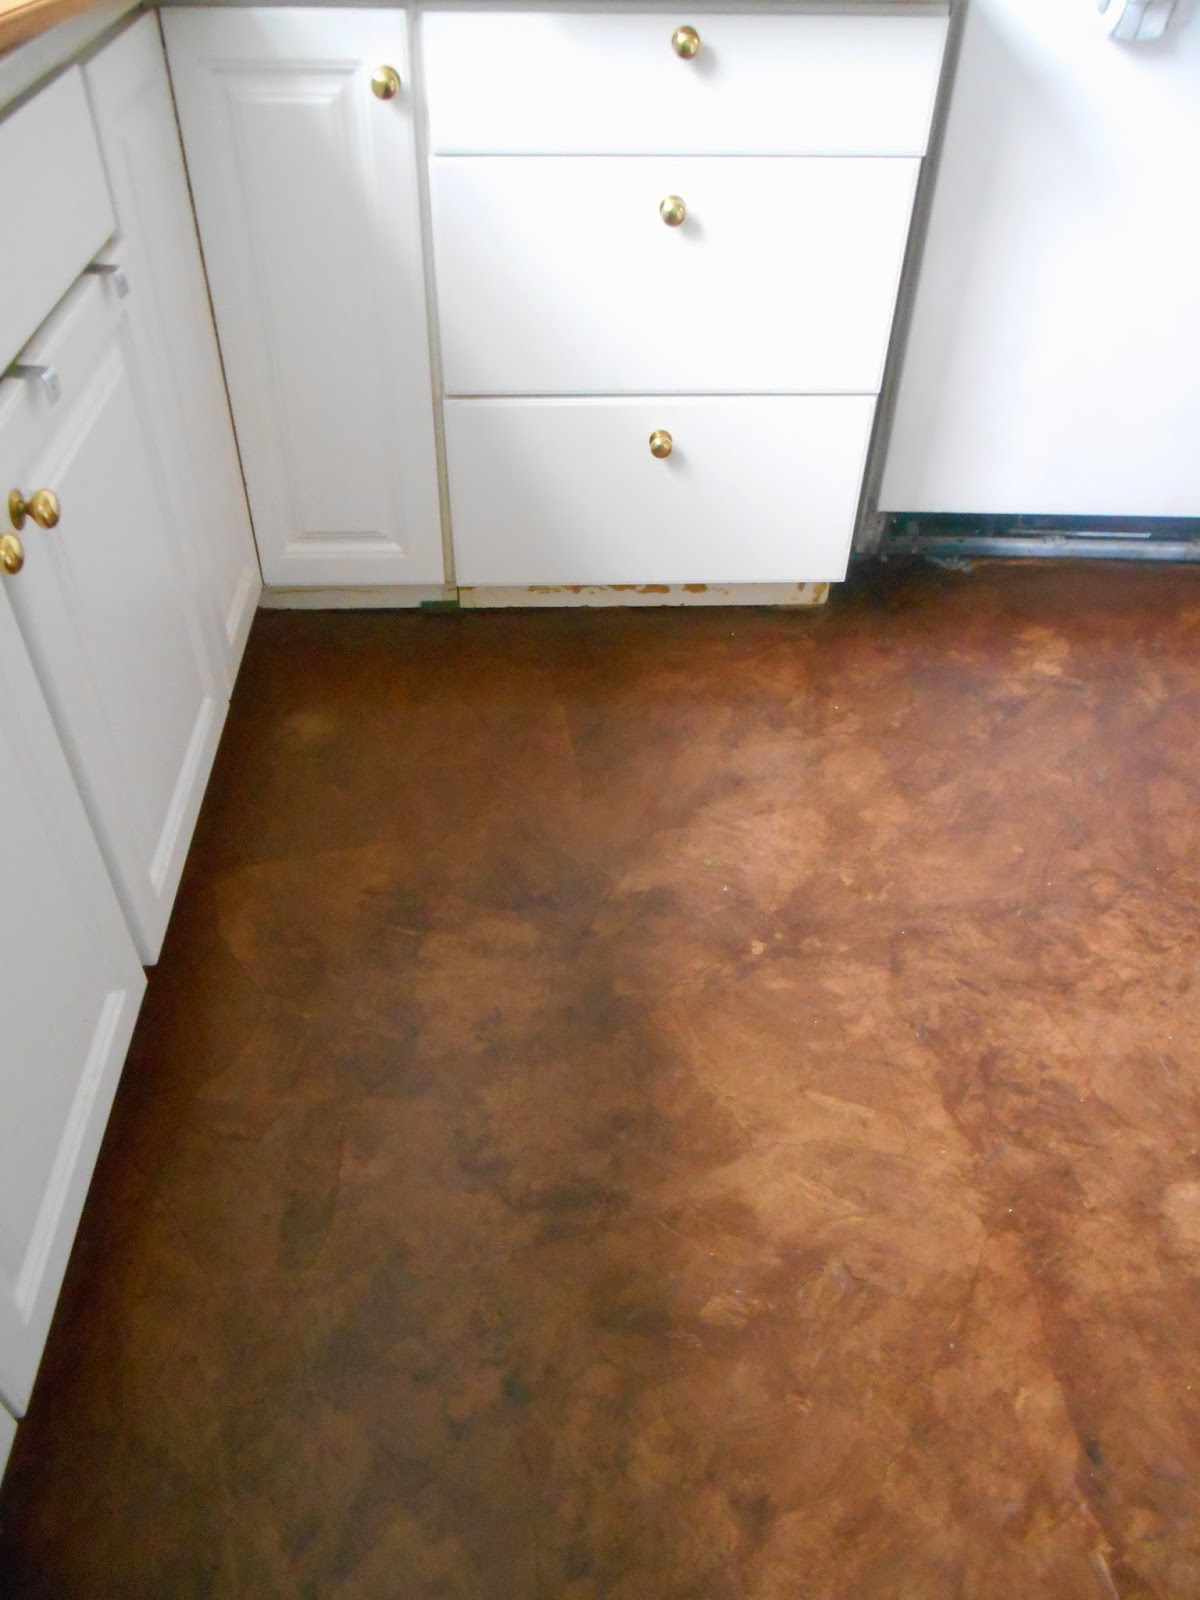 How to identify asbestos floor tiles or asbestos